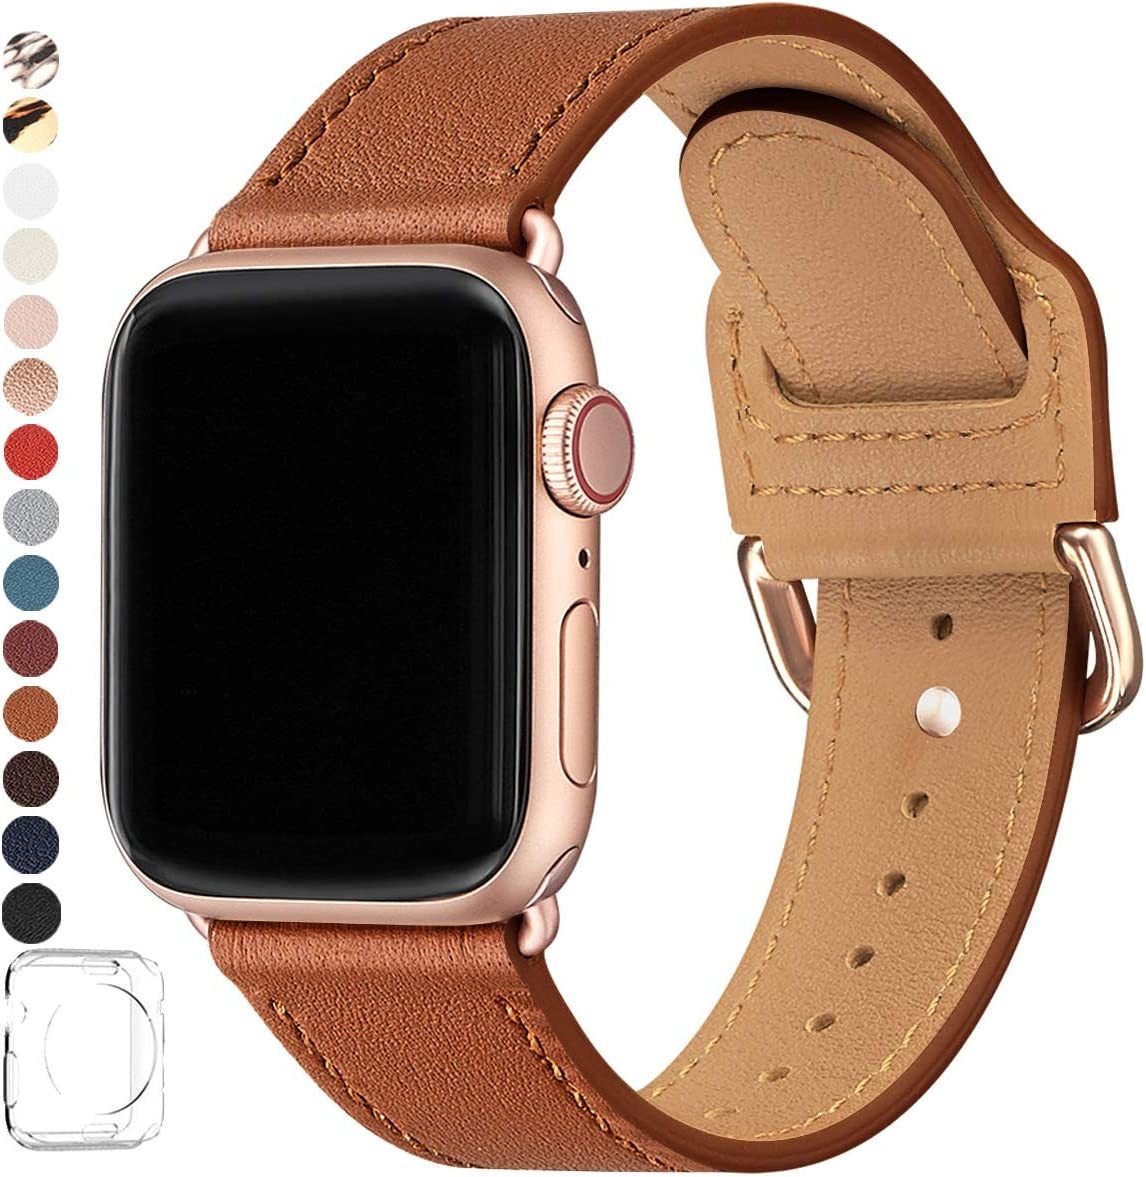 POWER PRIMACY Bands Compatible with Apple Watch Band 38mm 40mm 42mm 44mm, Top Grain Leather Smart Watch Strap Compatible for Men Women iWatch Series 6 5 4 3 2 1,SE(Brown/Rosegold, 38mm/40mm)